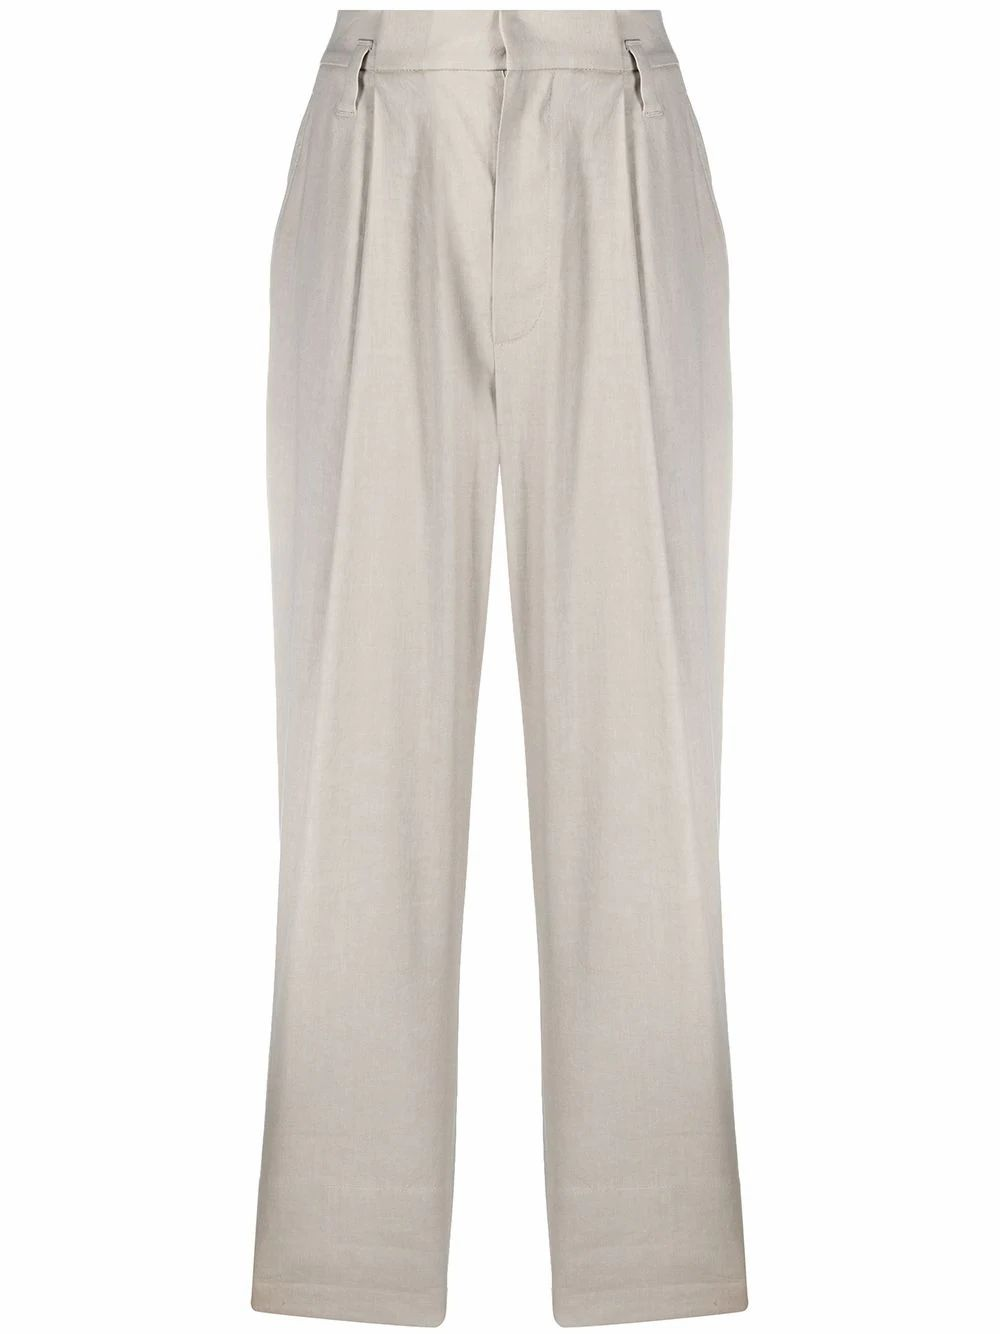 Brunello Cucinelli BRUNELLO CUCINELLI WOMEN'S MF591P7636C8575 GREY LINEN PANTS